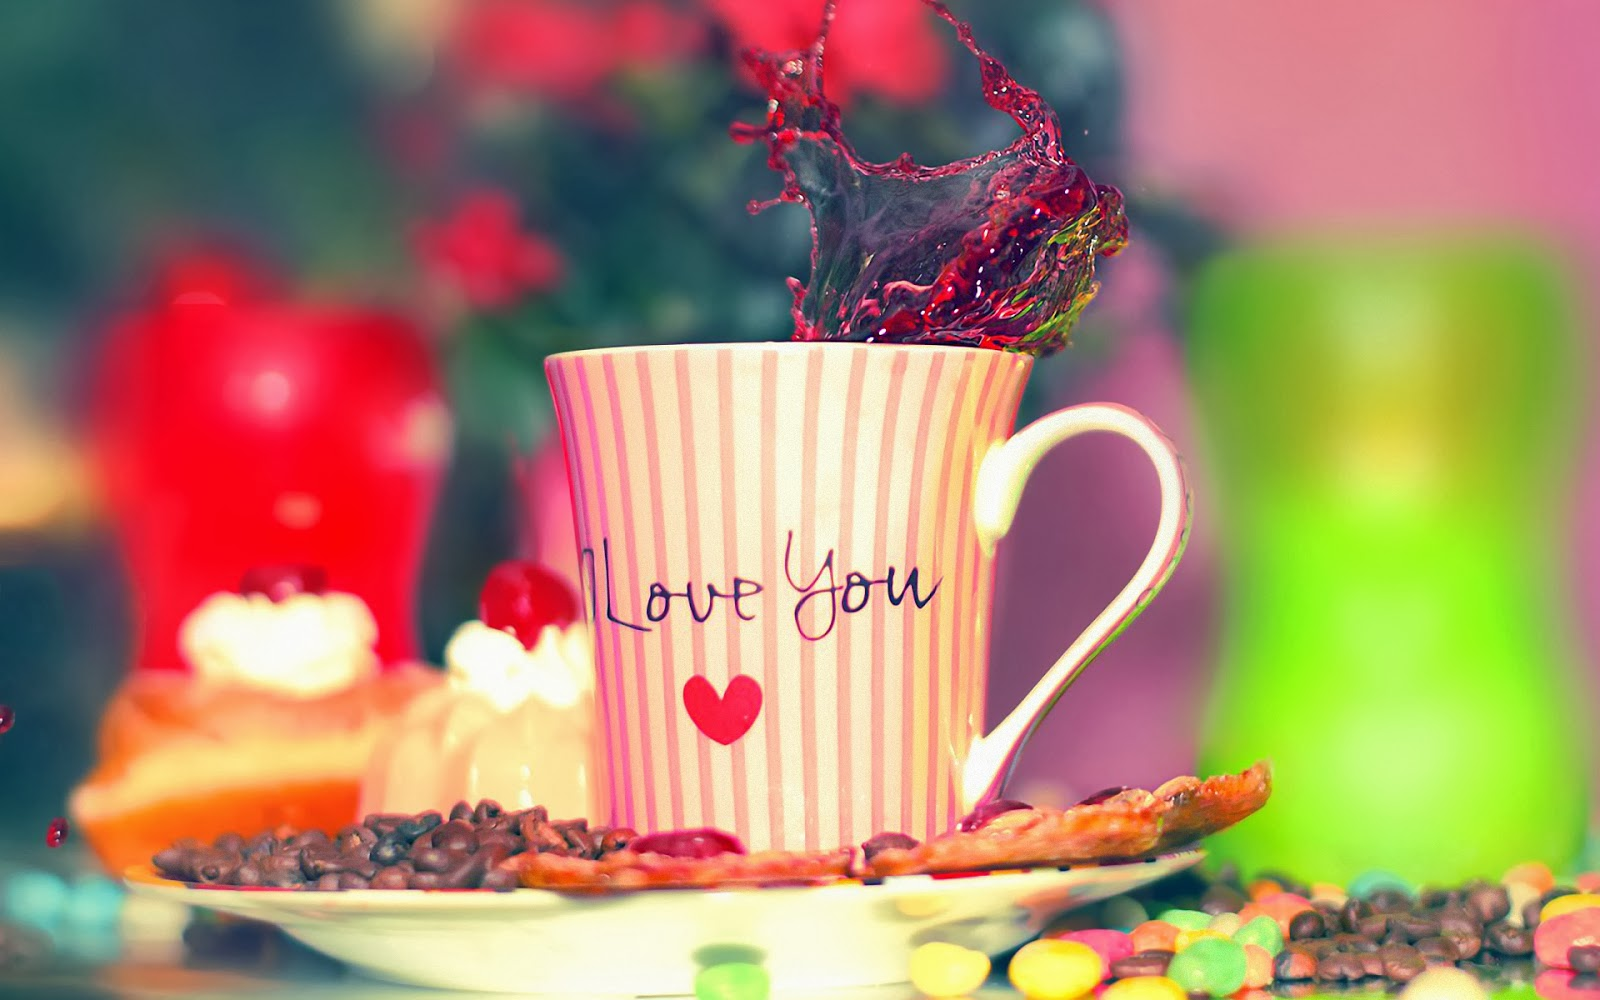 I-love-you-text-cup-image-HD.jpg